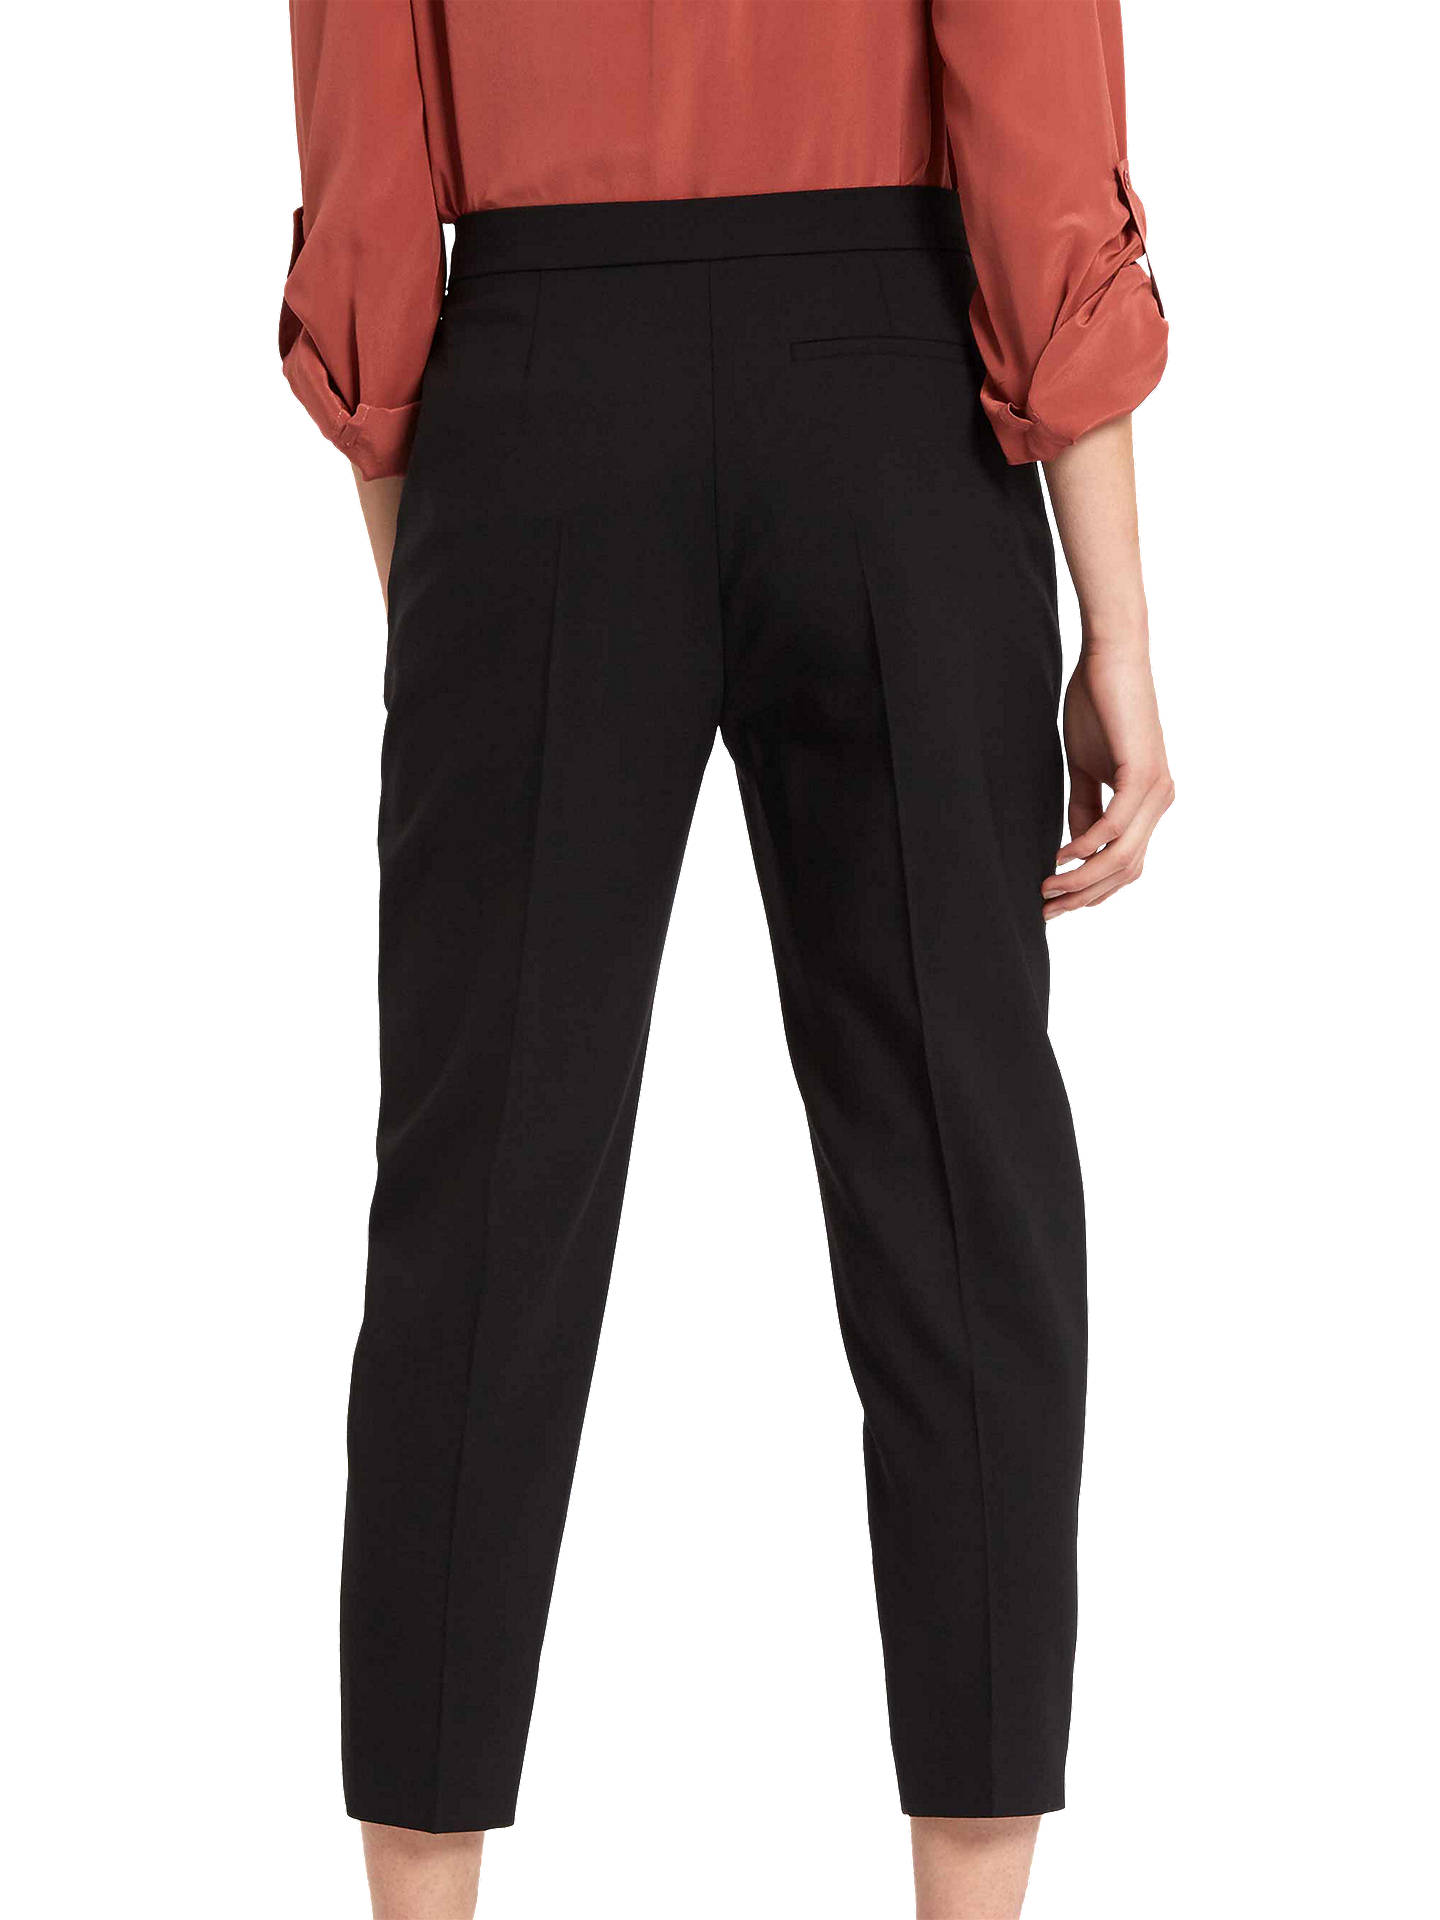 BuyJaeger Crop Tapered Trouser, Black, 6 Online at johnlewis.com